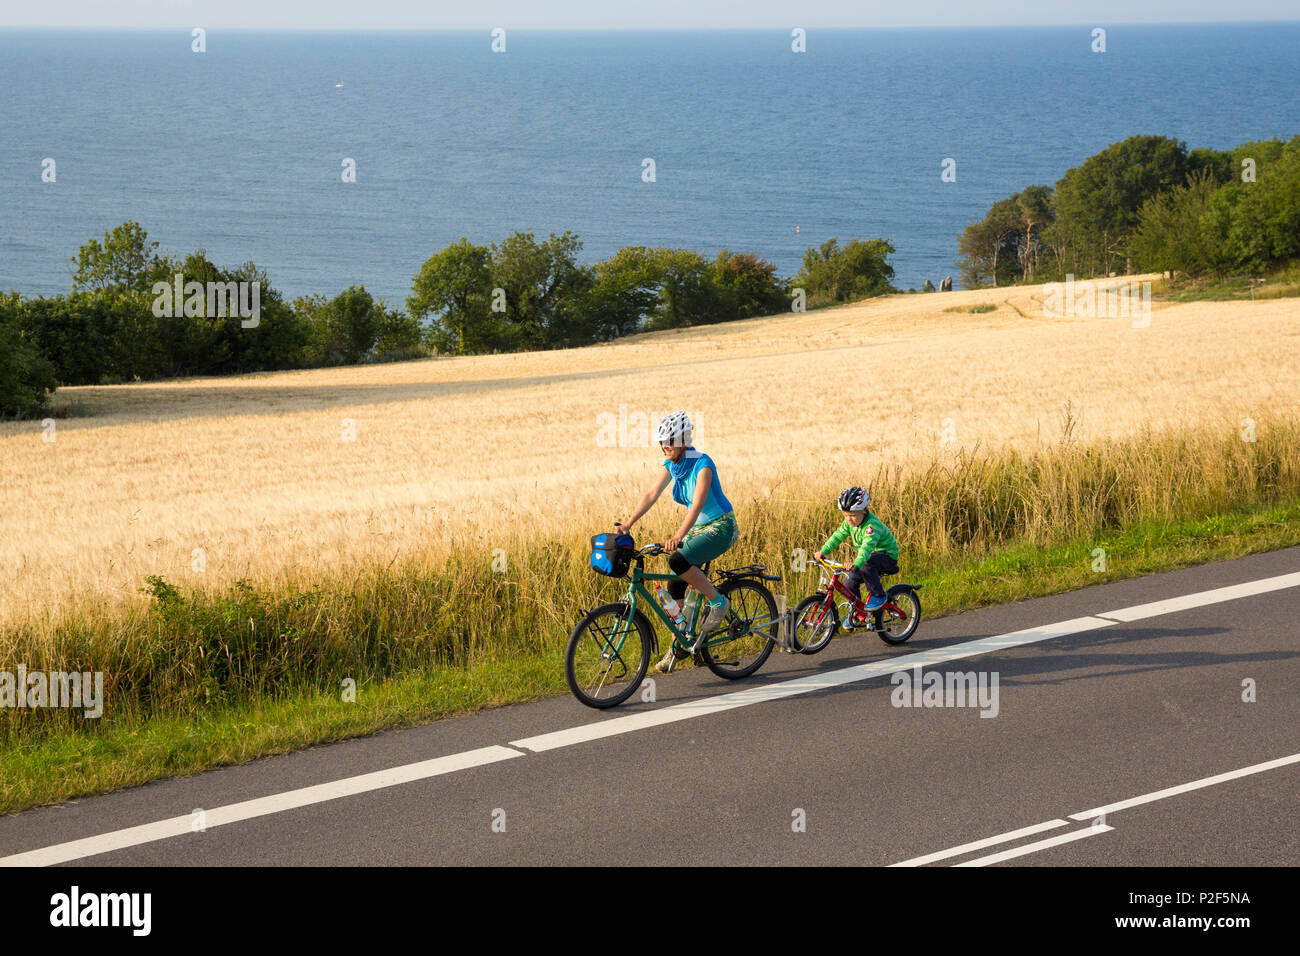 Mother and son on y cycle tour near a cornfield, Baltic sea, MR, Bornholm, near Gudhjem, Denmark, Europe - Stock Image